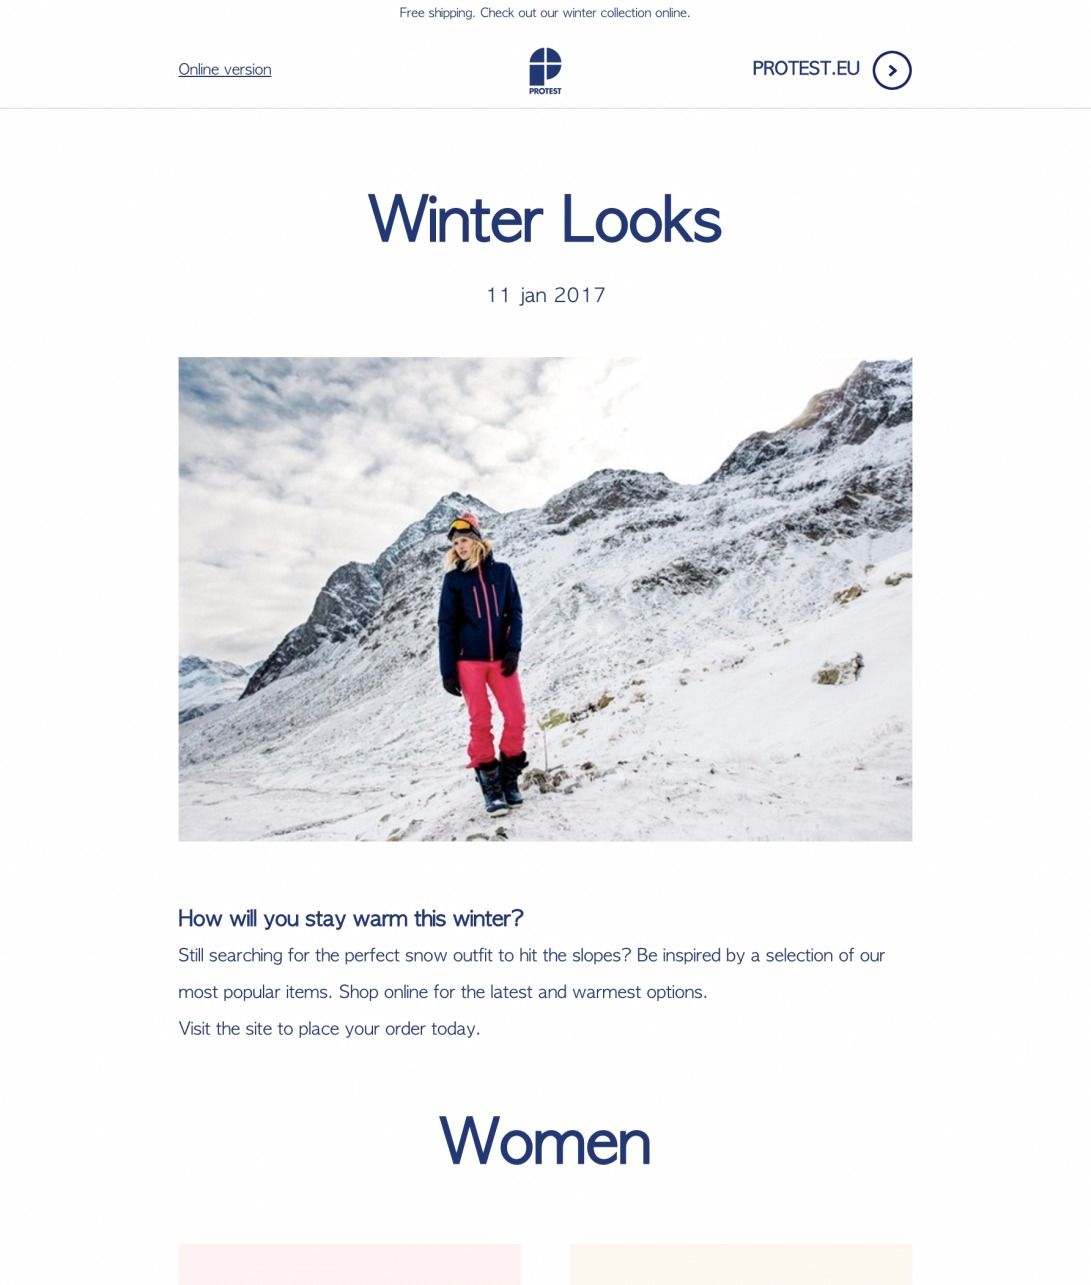 Find Your Winter Outfit